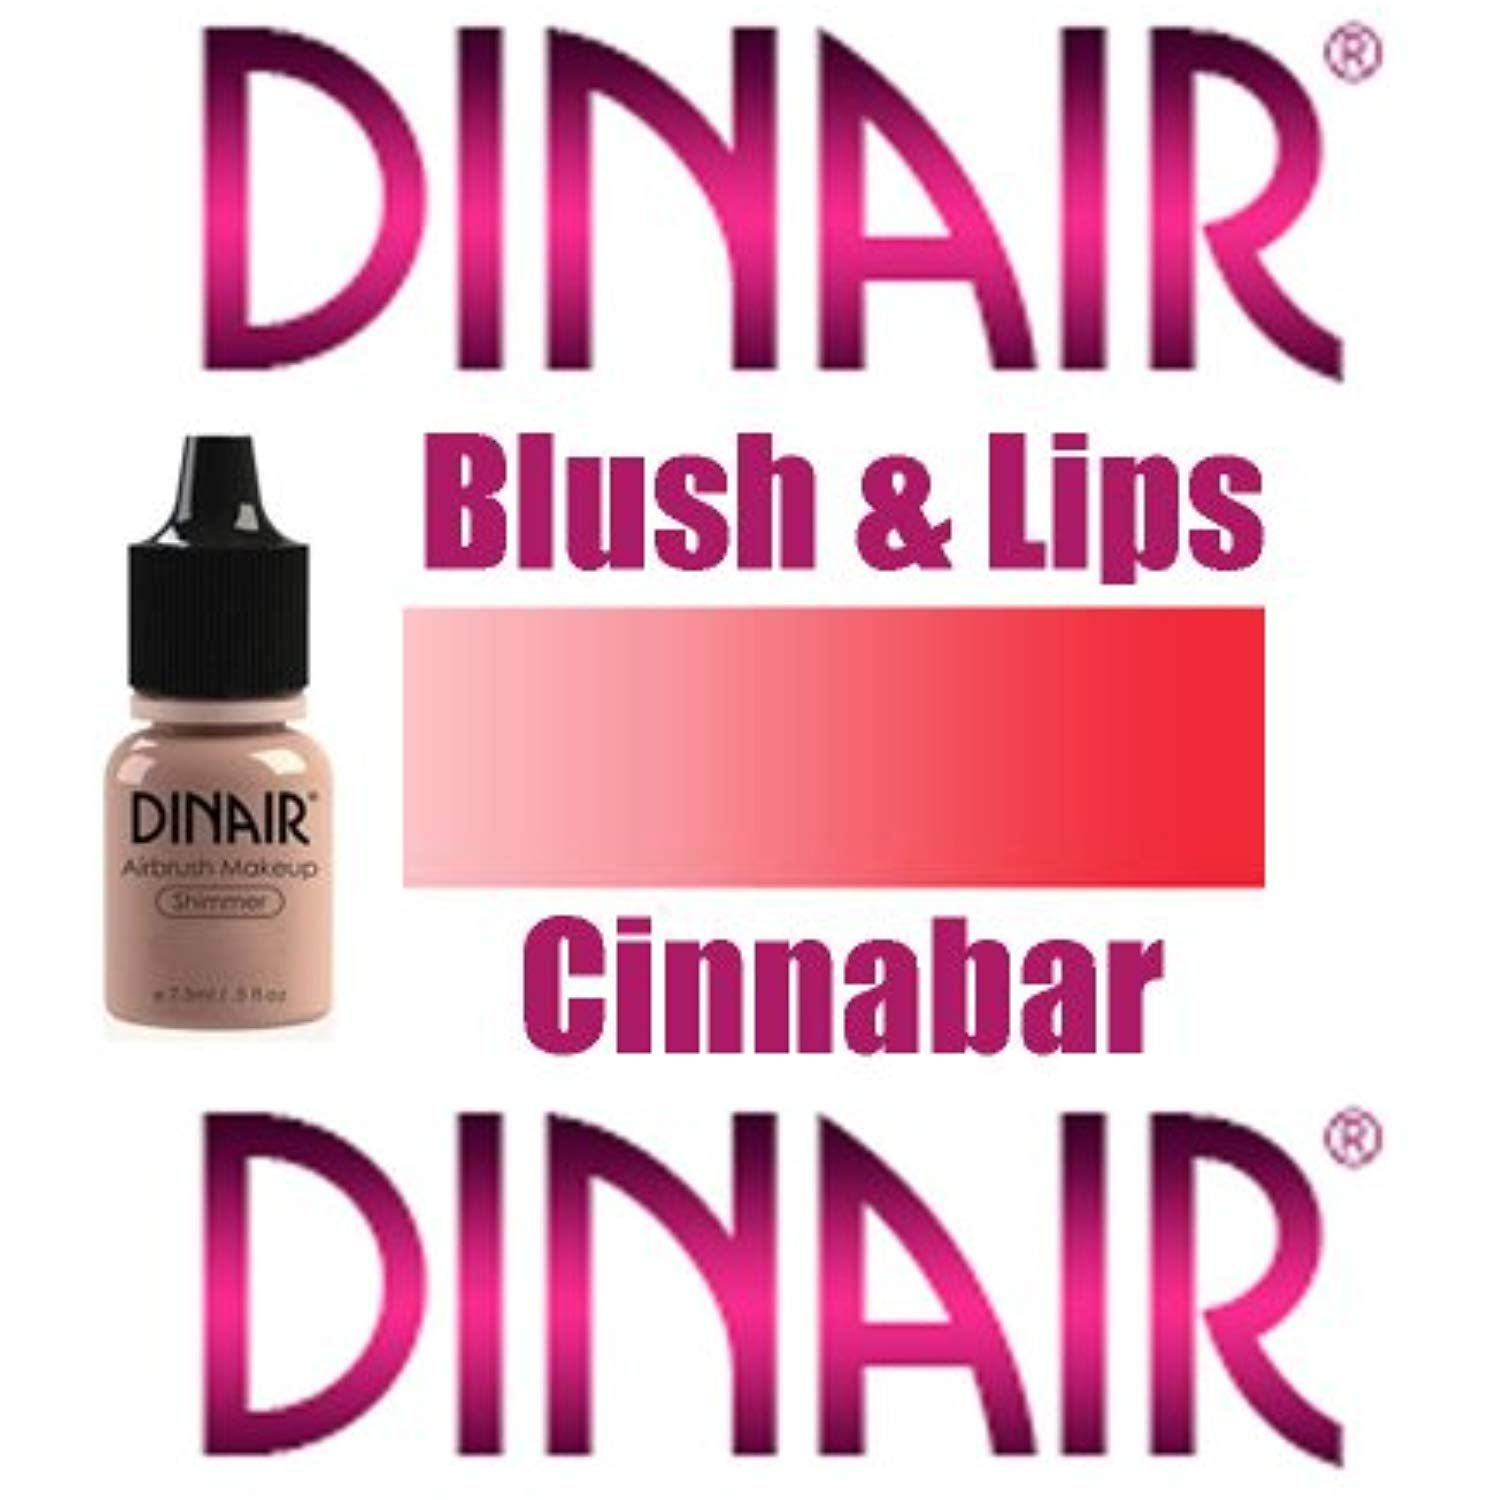 DINAIR AIRBRUSH BLUSH and LIPS MAKEUP 1 Bottle CINNABAR